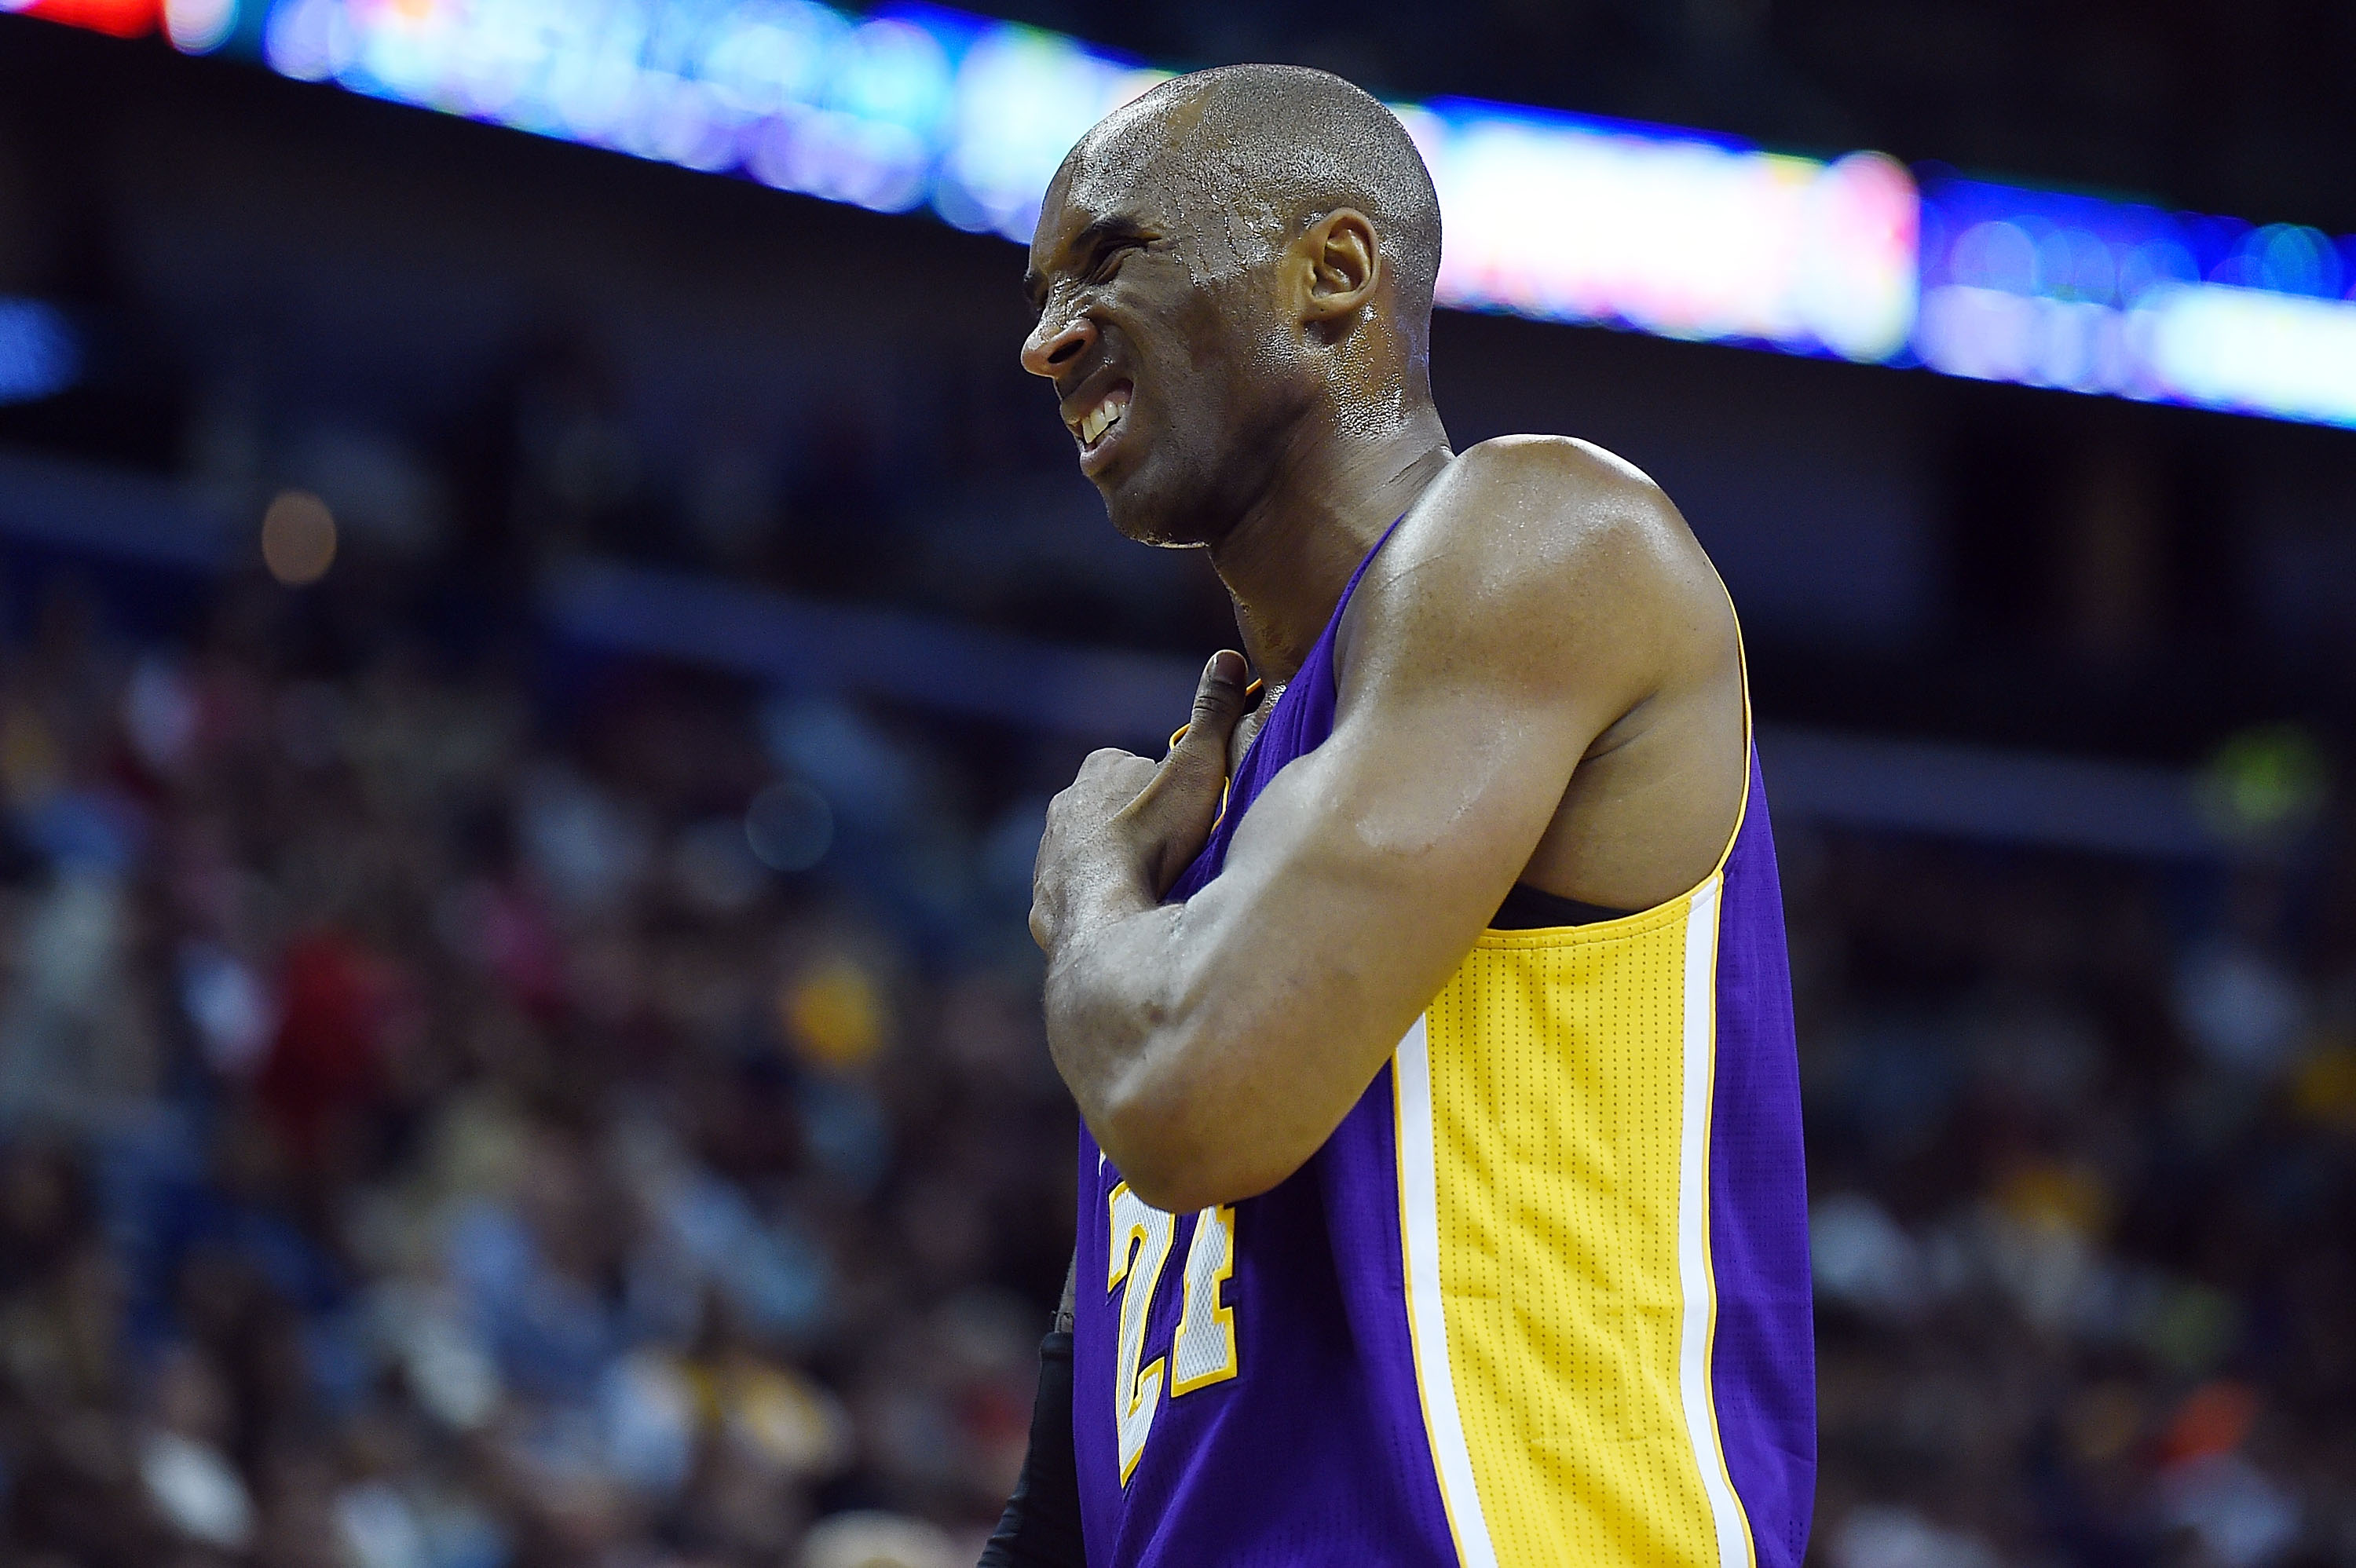 Kobe Bryant grabs his shoulder during a game at the Smoothie King Center on Jan. 21, 2015 in New Orleans.